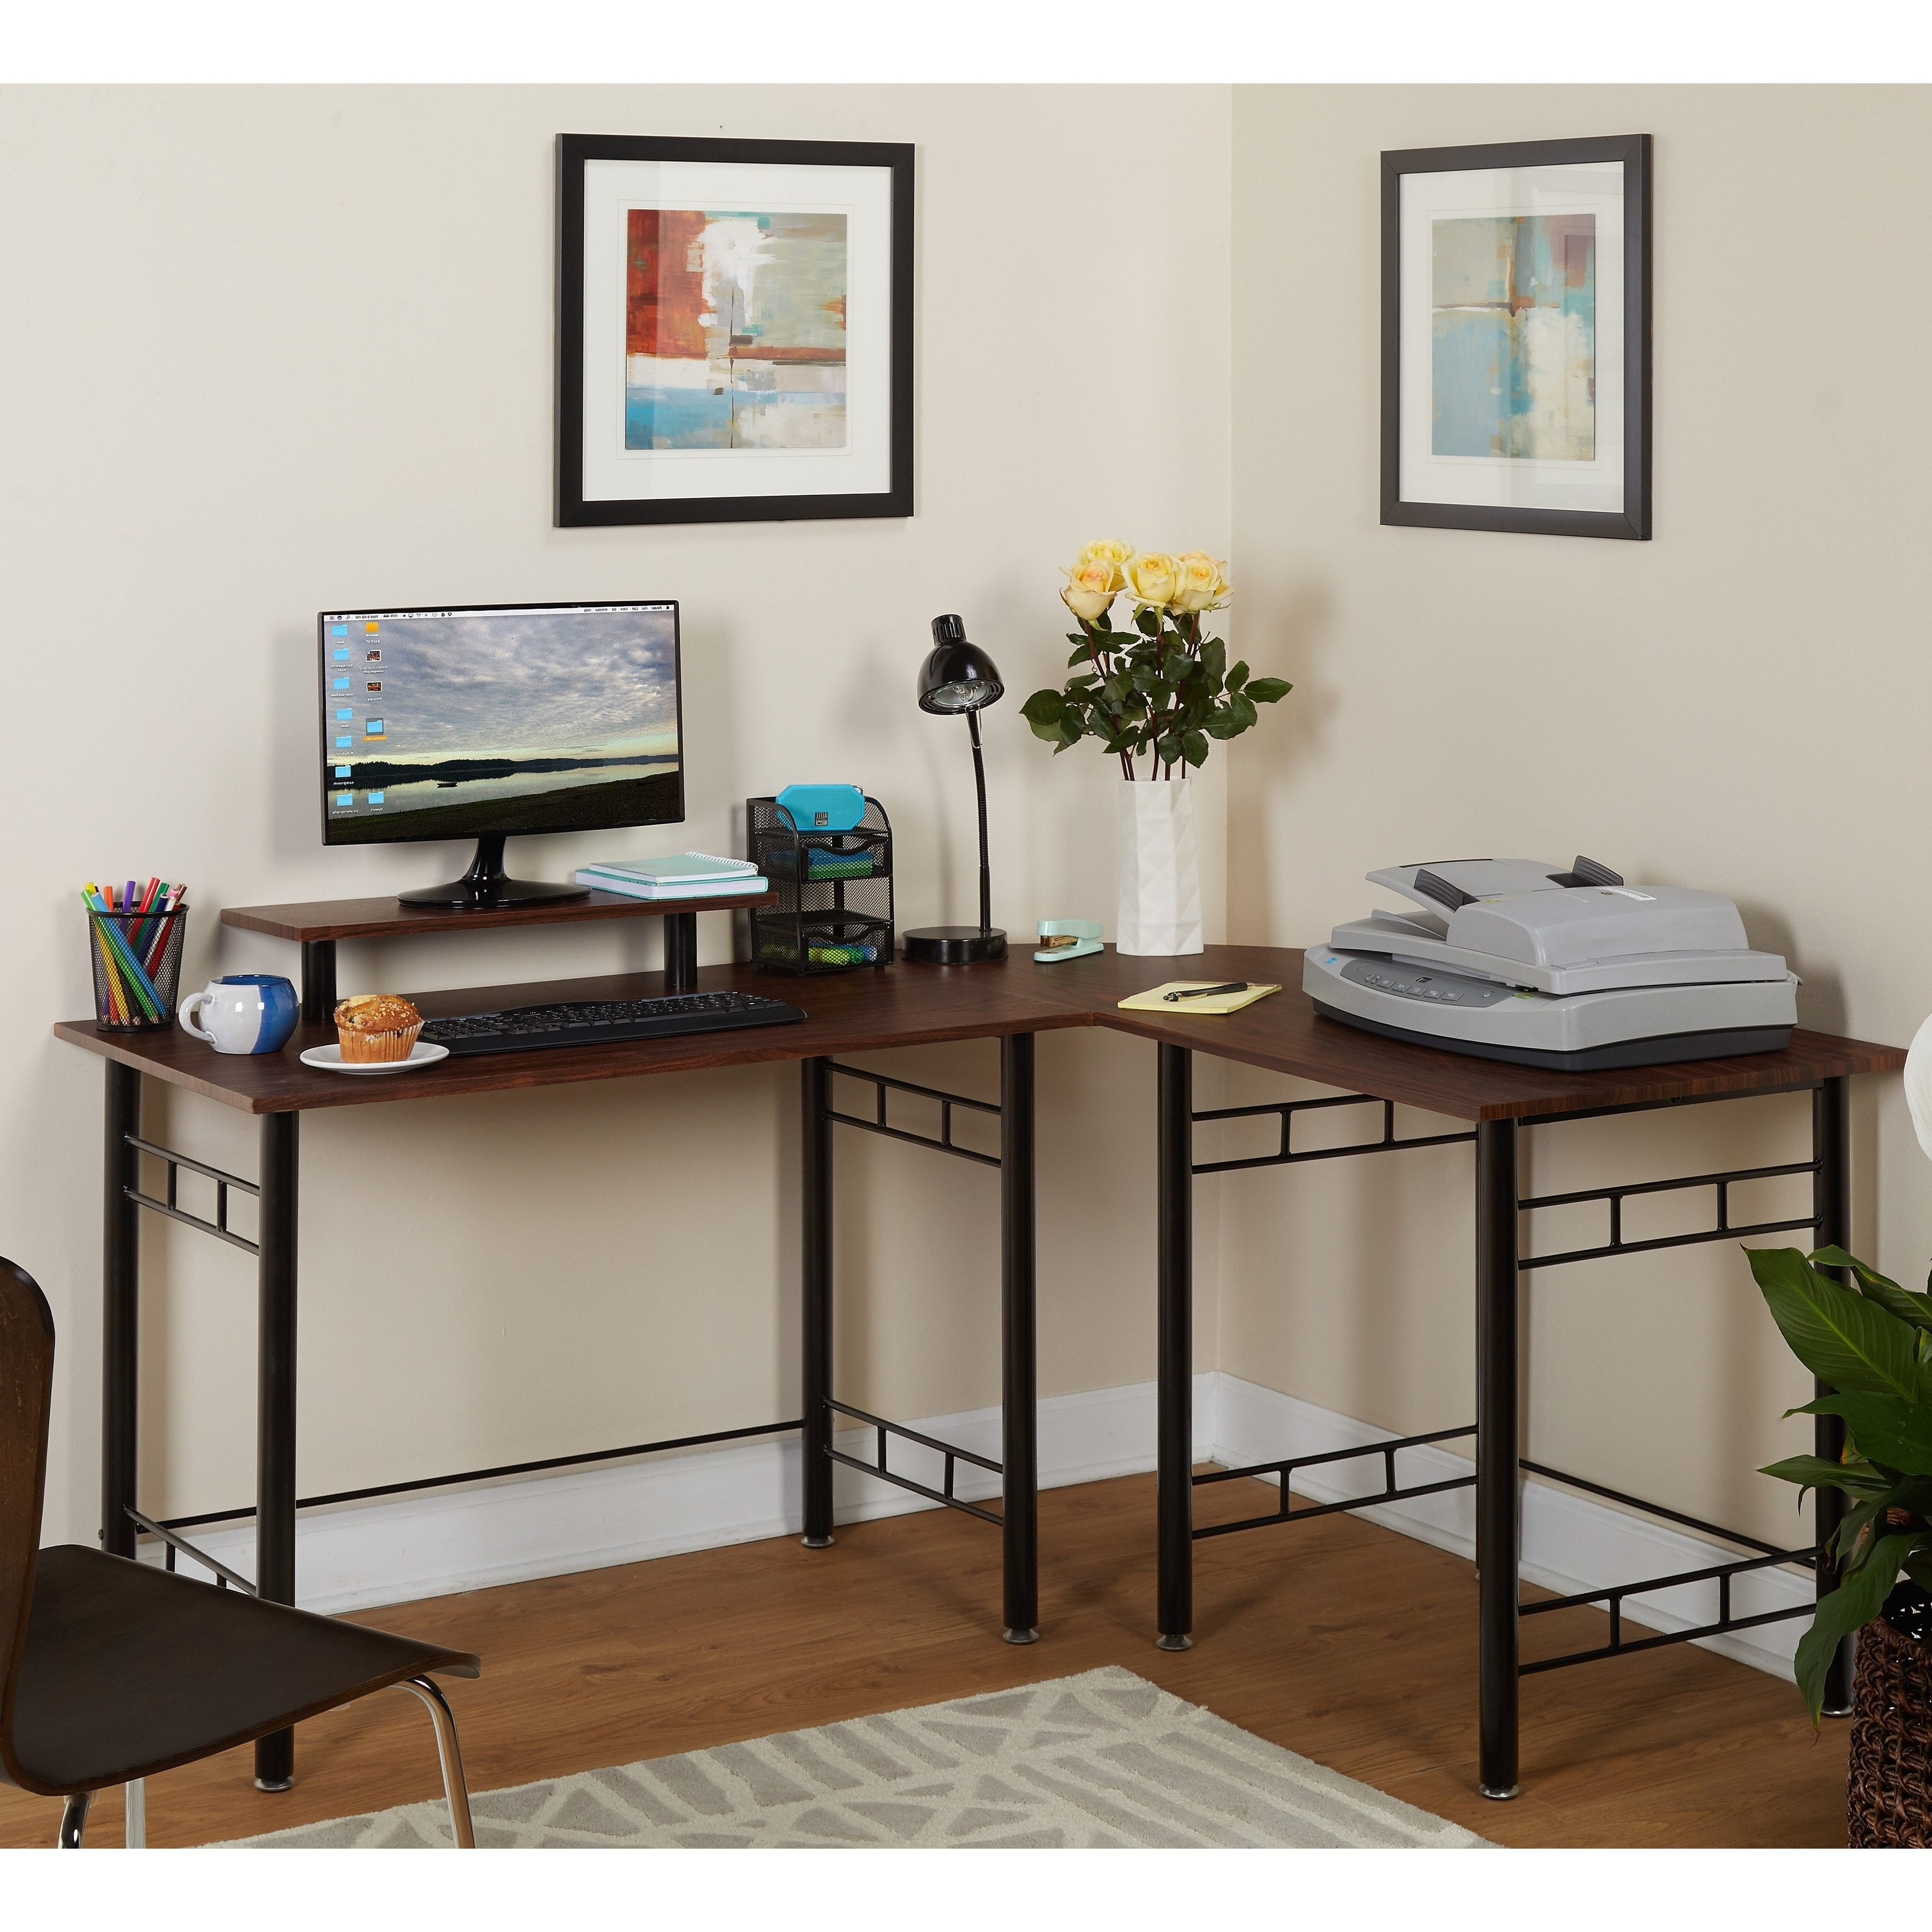 Widely Used Simple Living L Shaped Espresso Computer Desk – Free Shipping Pertaining To Espresso Computer Desks (View 20 of 20)